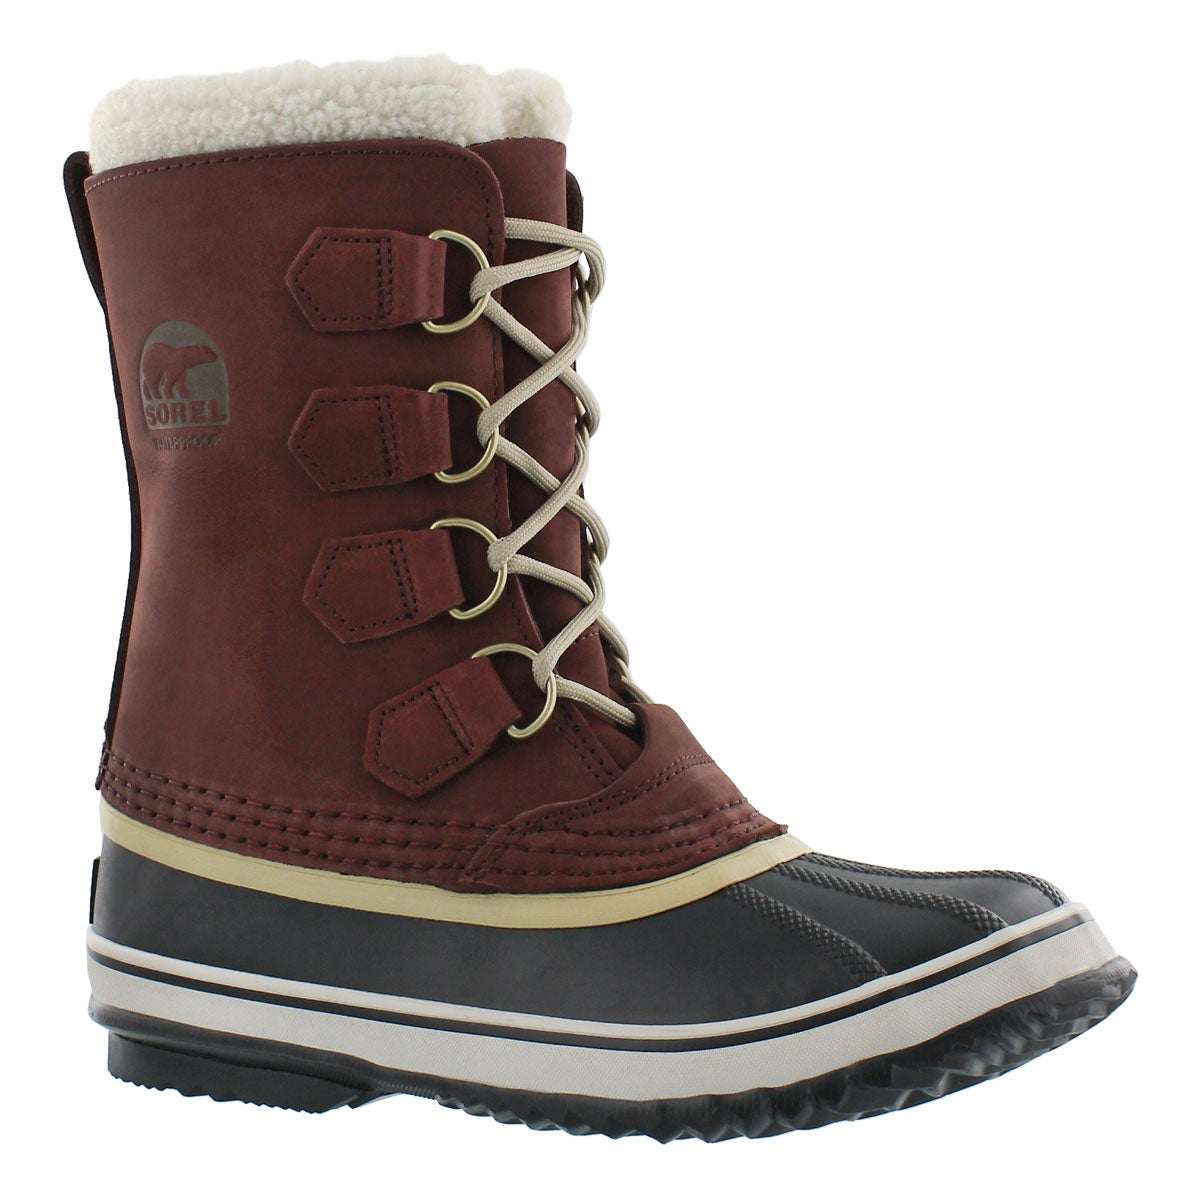 Women's 1964 PAC 2 redwood winter boots